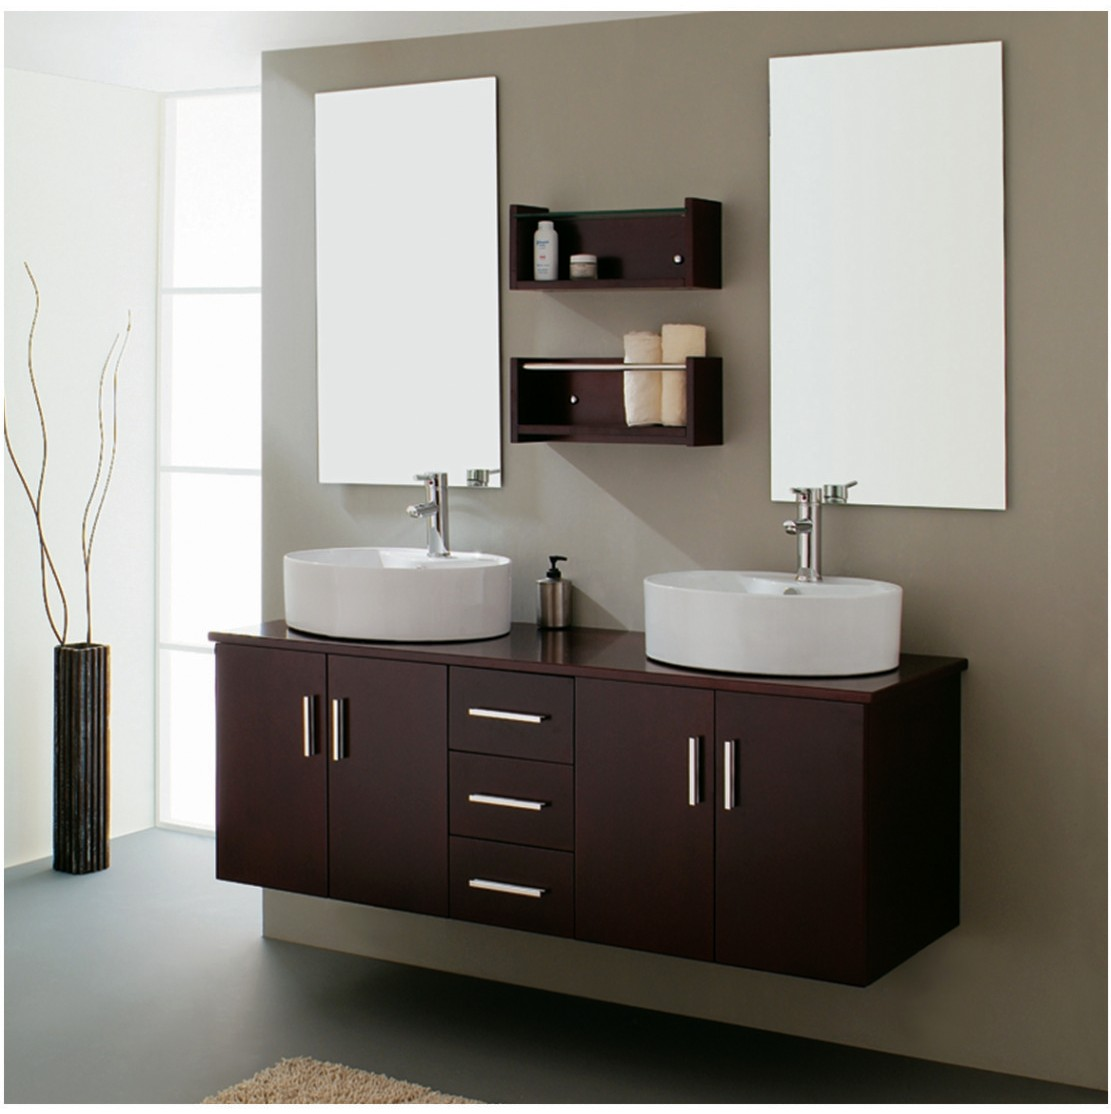 Double sink bathroom decorating ideas 2017 2018 best for Small modern bathroom designs 2012